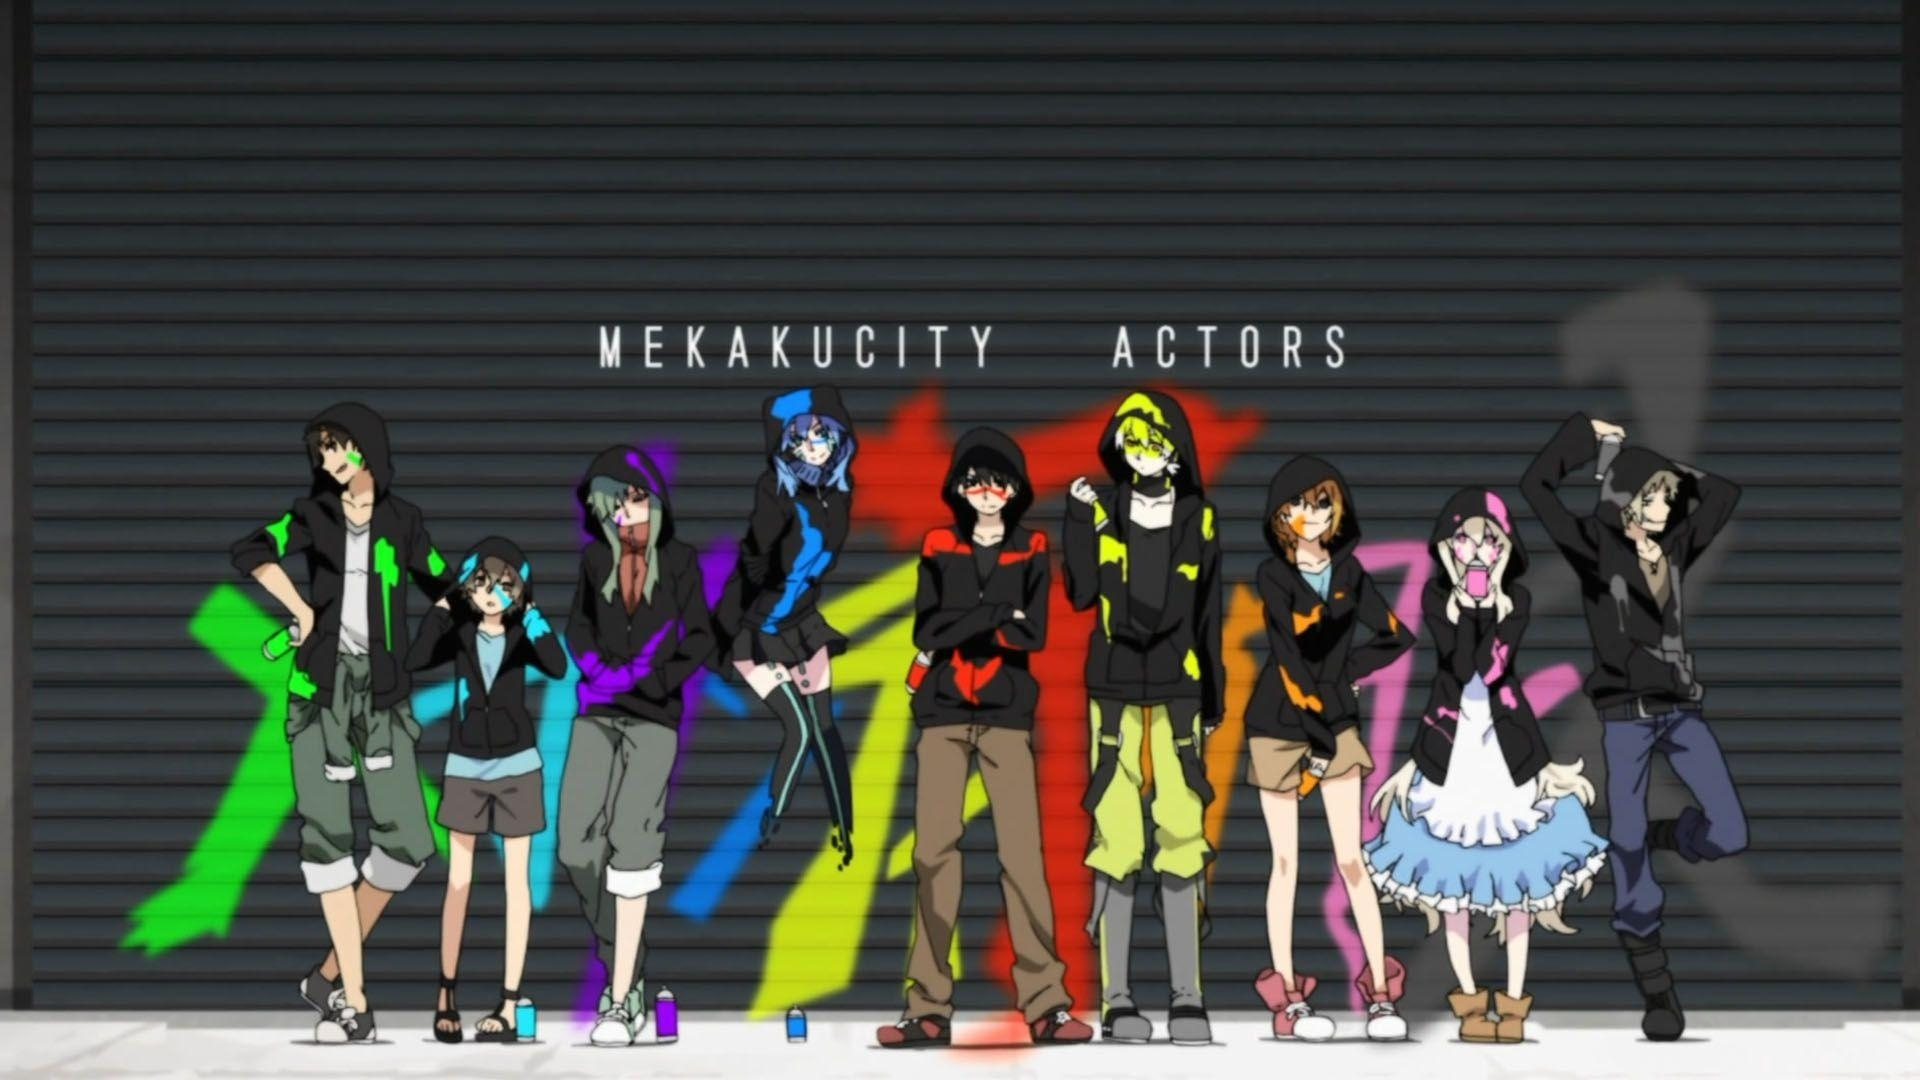 mekakucity actors wallpapers - wallpaper cave